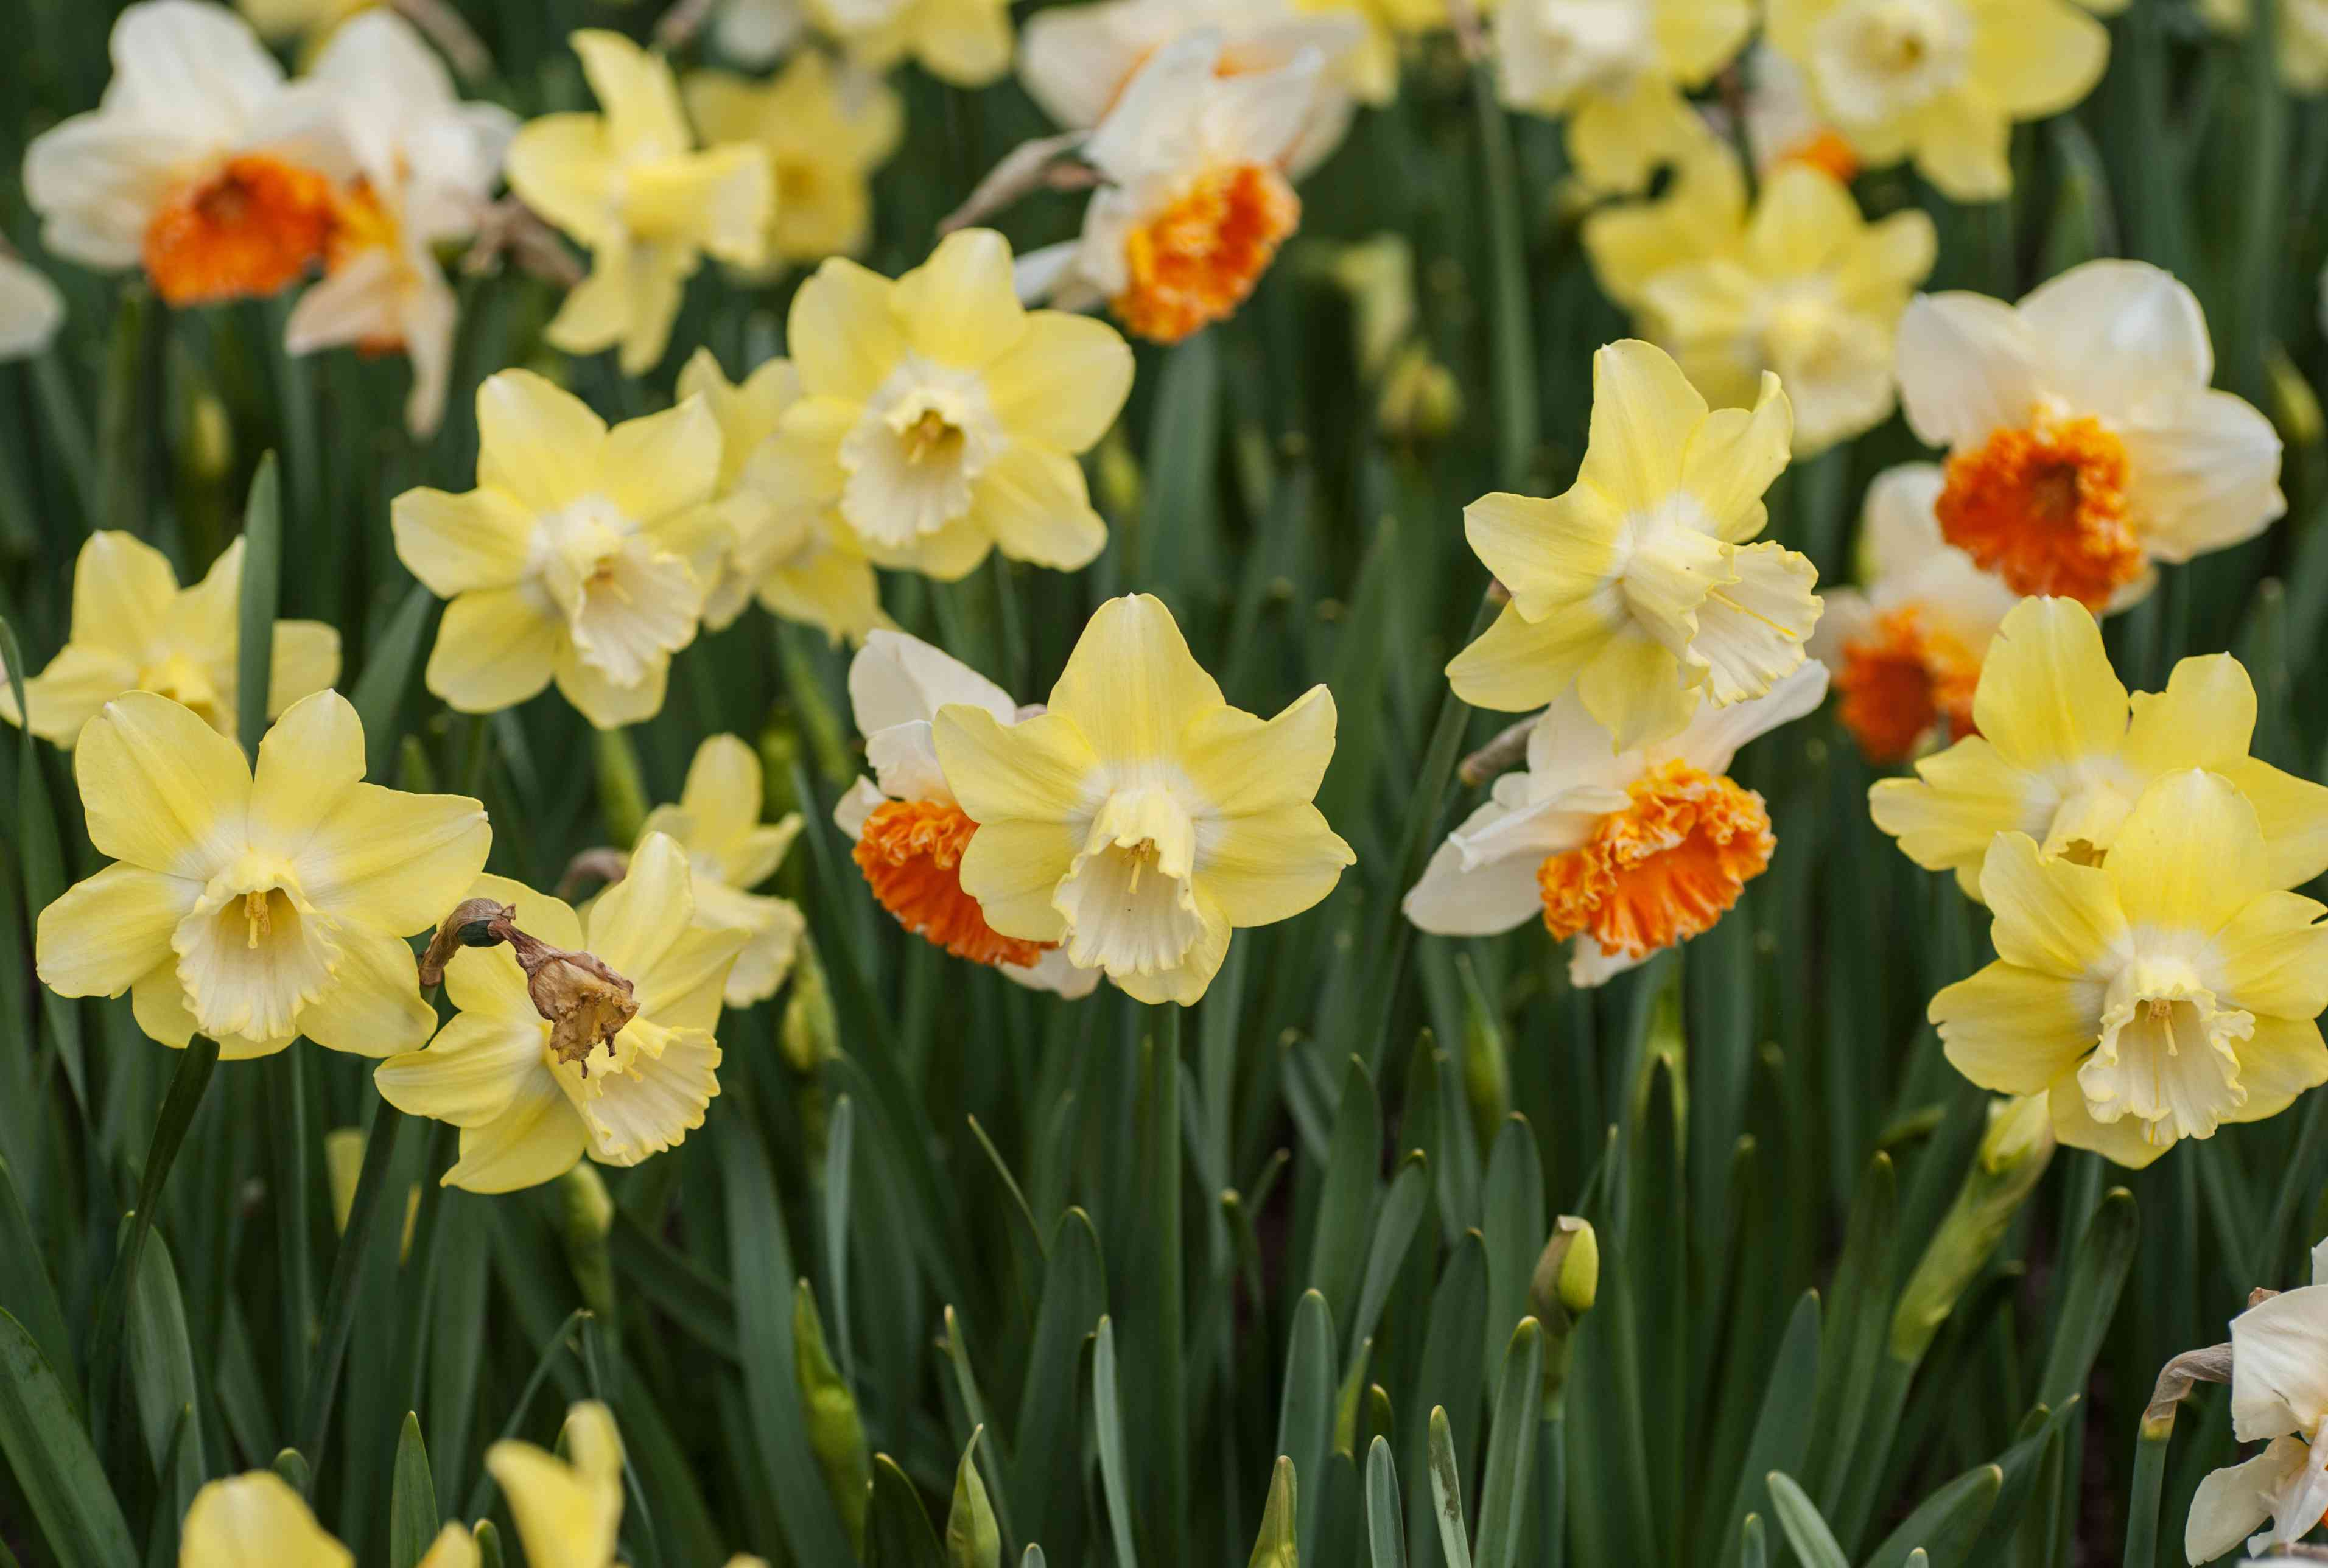 Jonquilla daffodil with yellow and white flat flowers